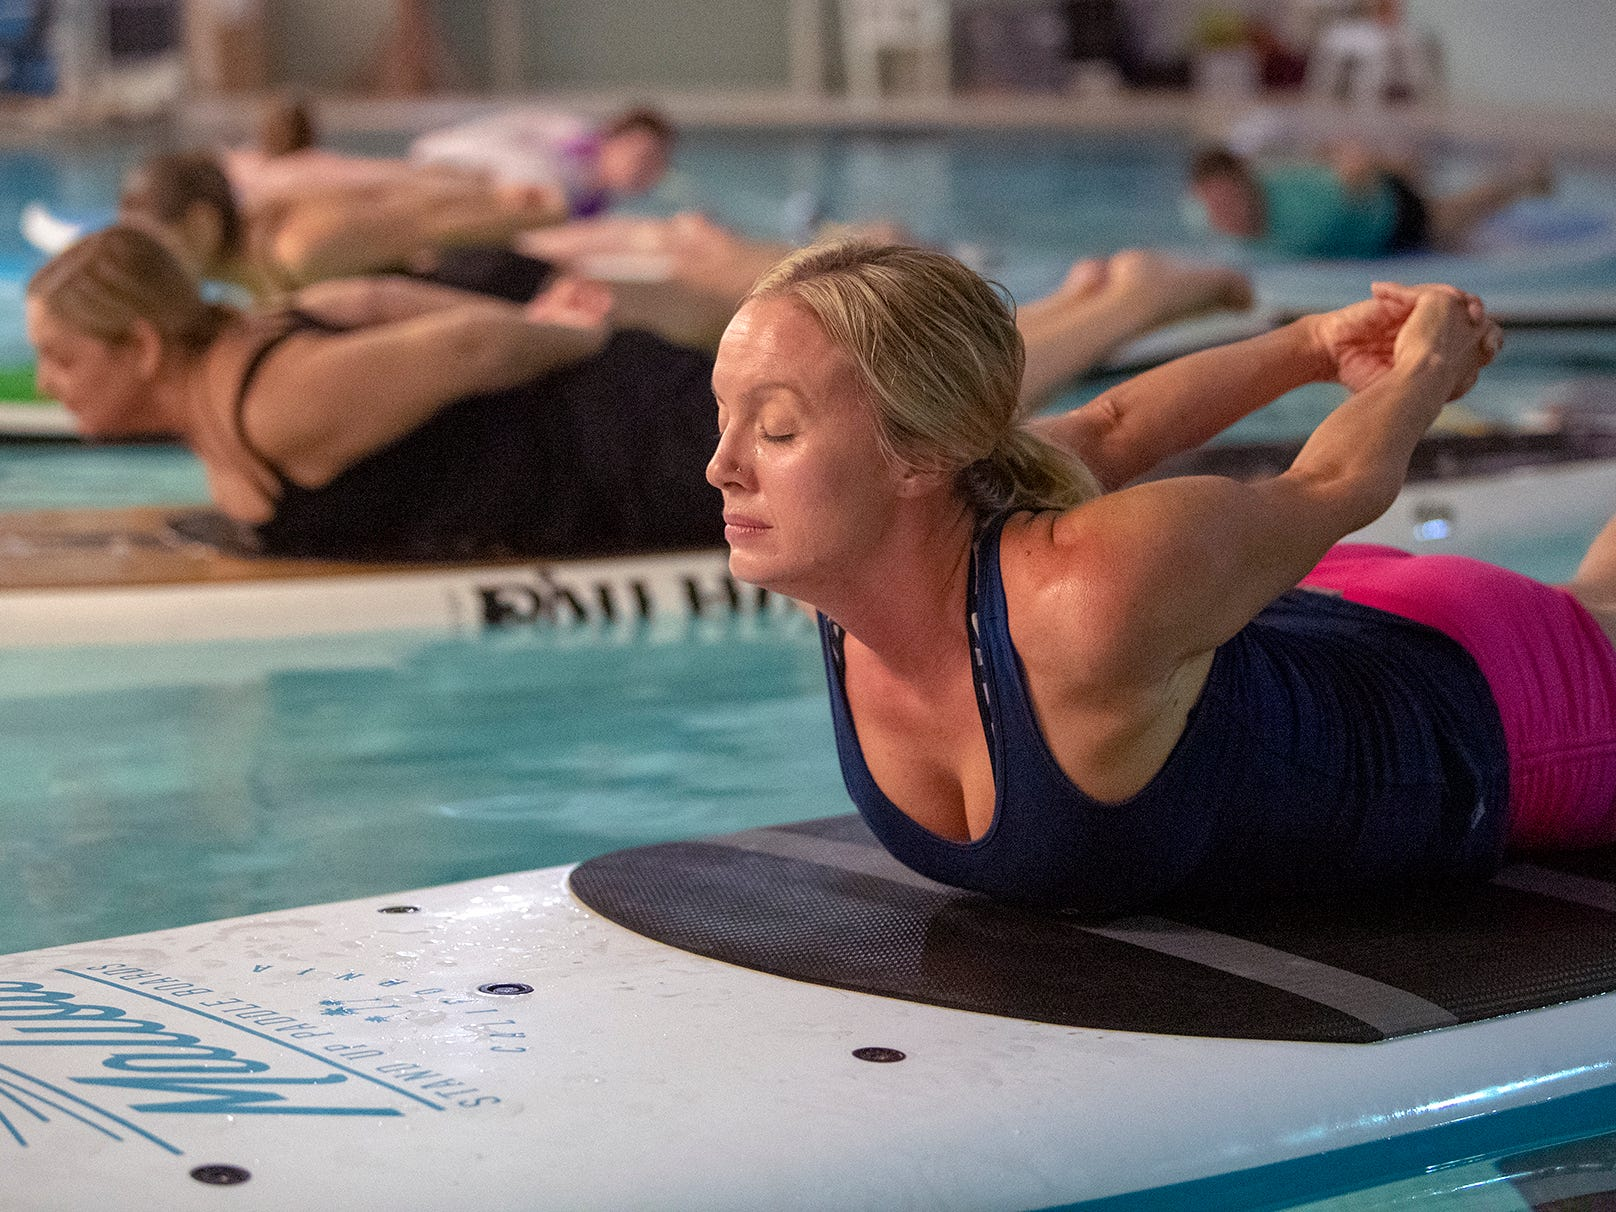 Heather Geare, a Yoga instructor for Shank's Mare and Stellar Fitness, leads the class on their paddle boards. The YWCA York is offering a Paddle Board Yoga Class in their pool for the first time. Shank's Mare provided the boards.